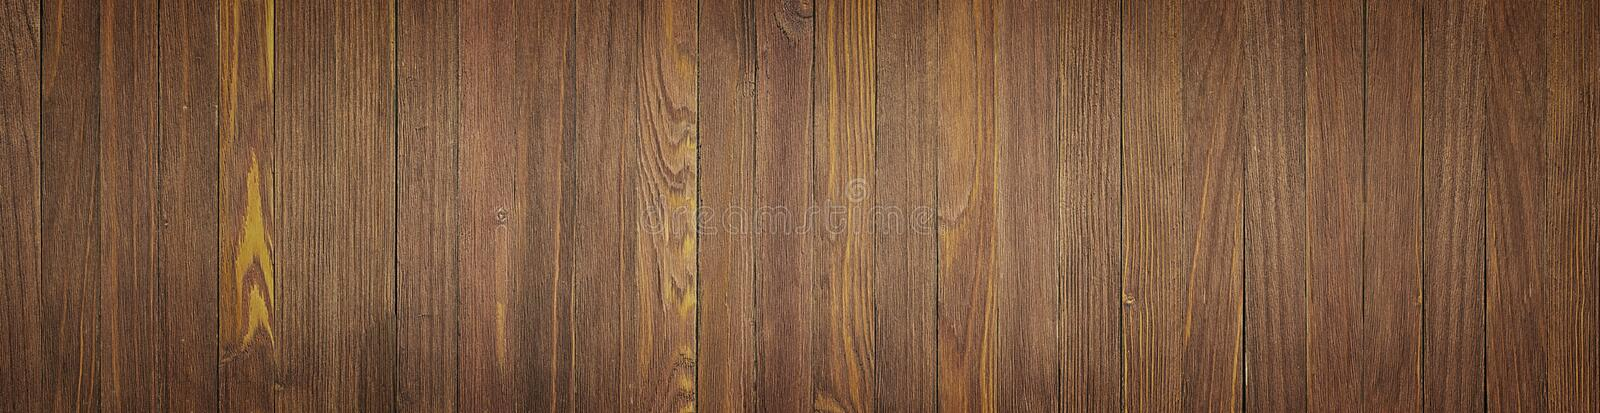 Background and texture of pine wood decorative furniture surface royalty free stock images